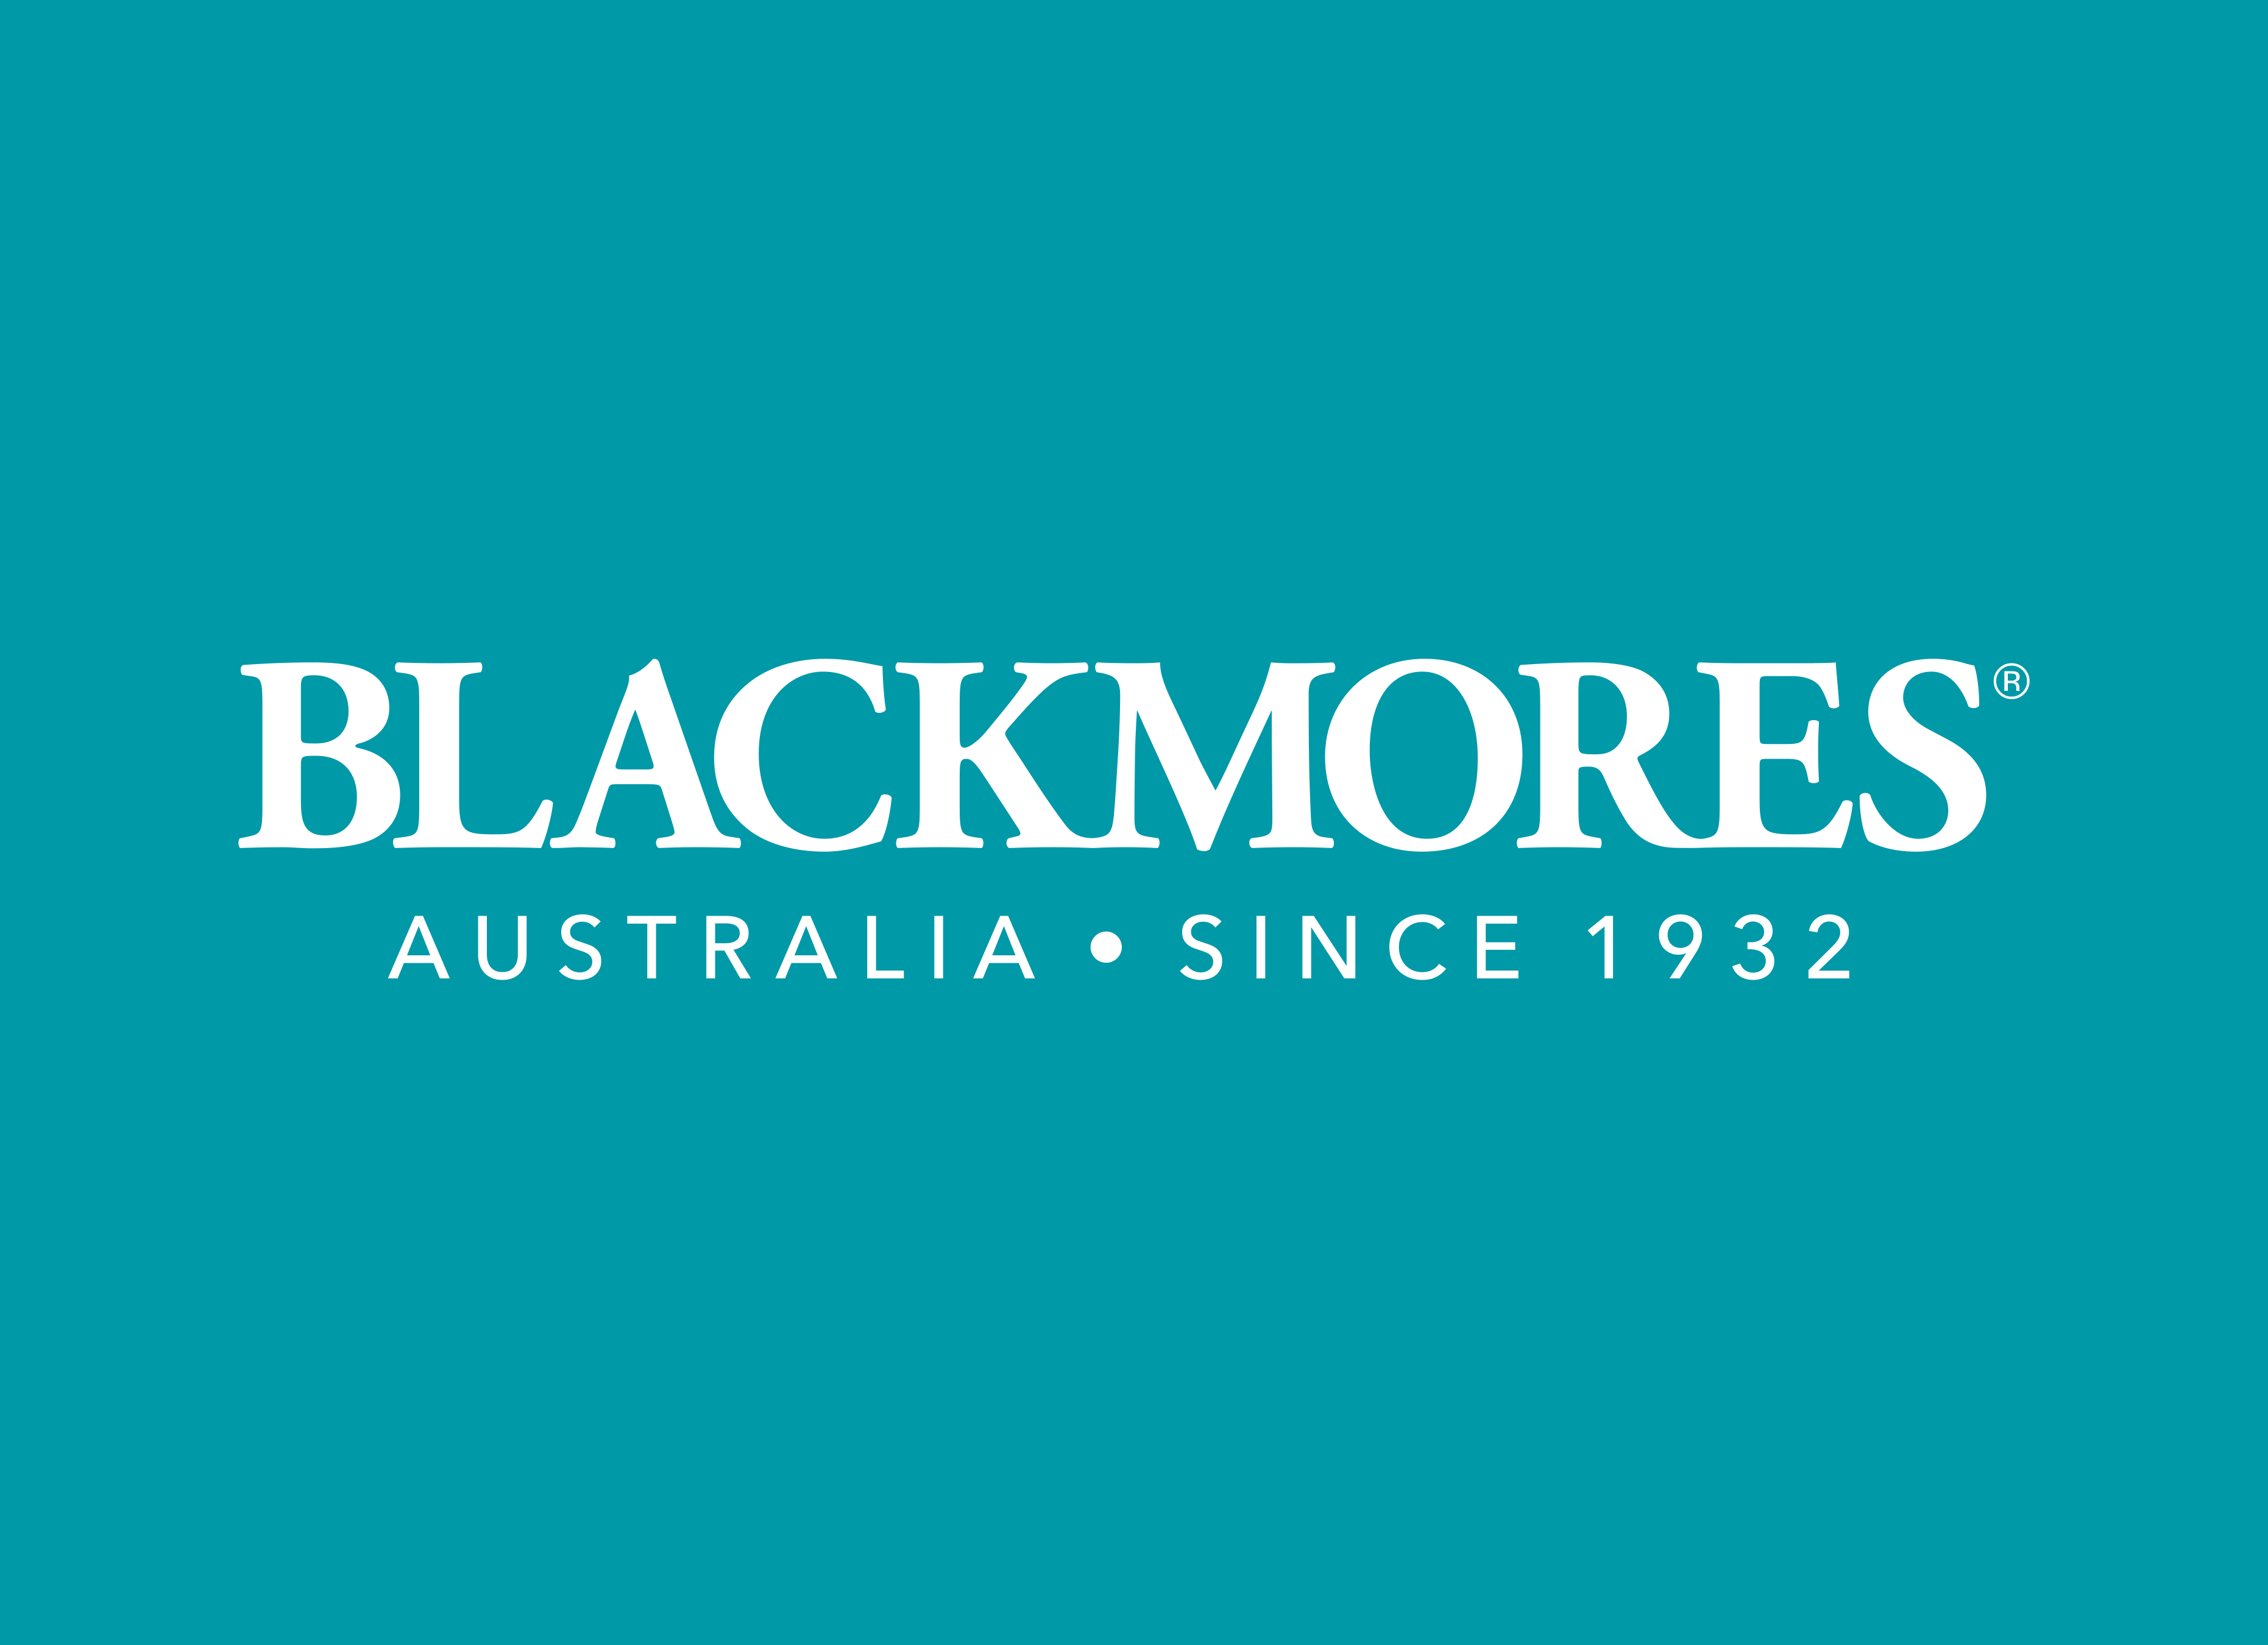 Blackmores logo with background.jpg